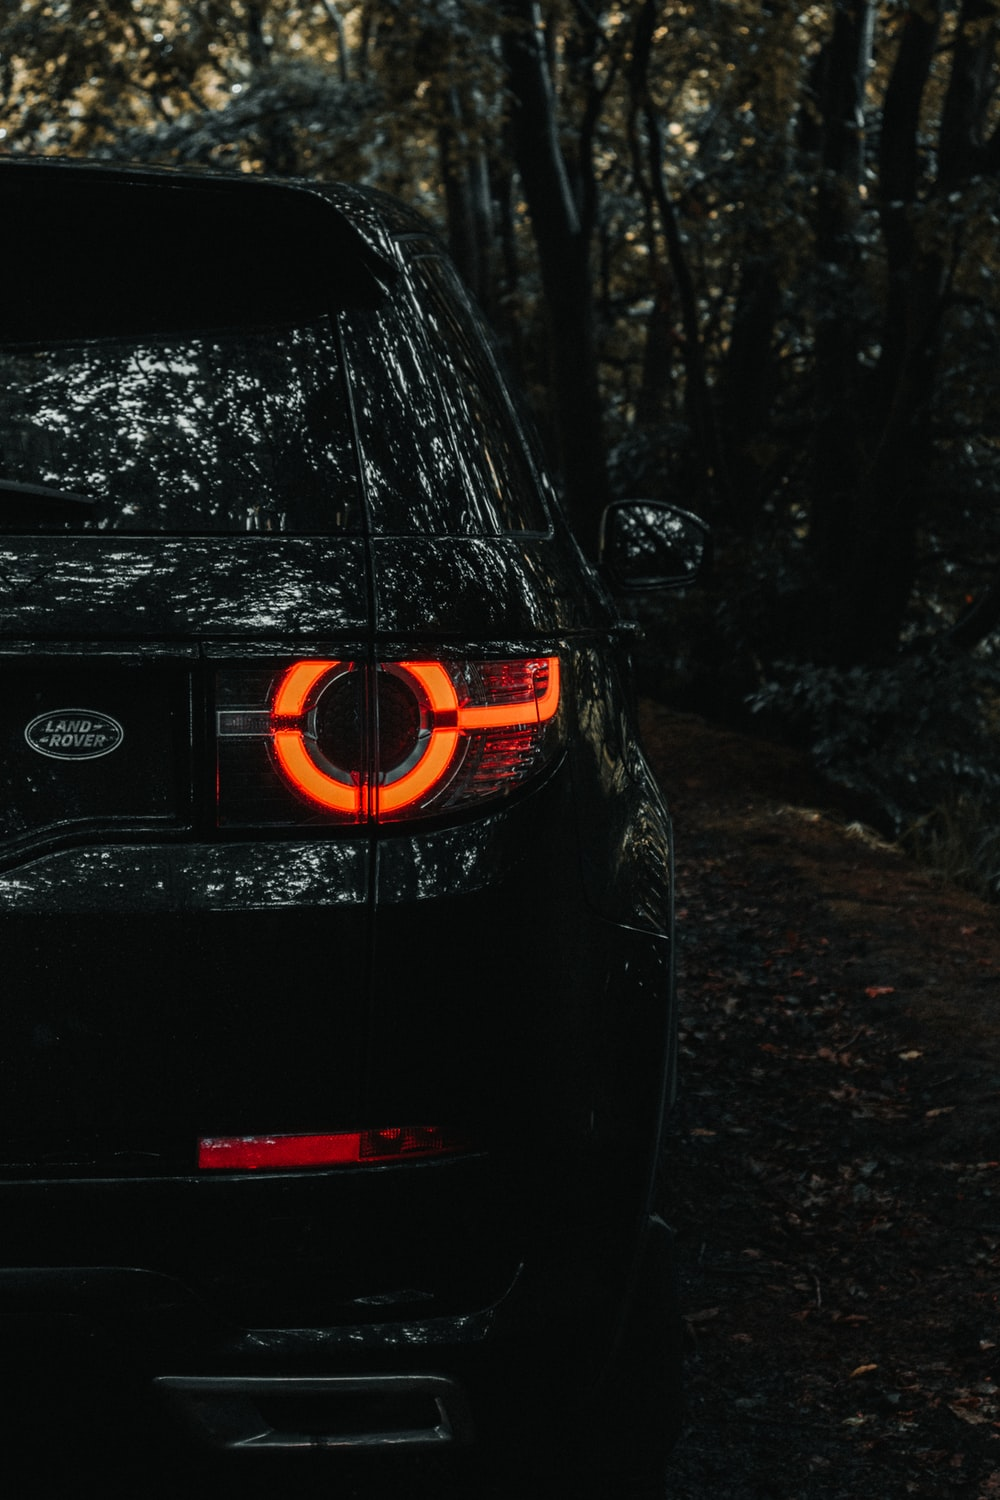 black bmw car in forest during daytime